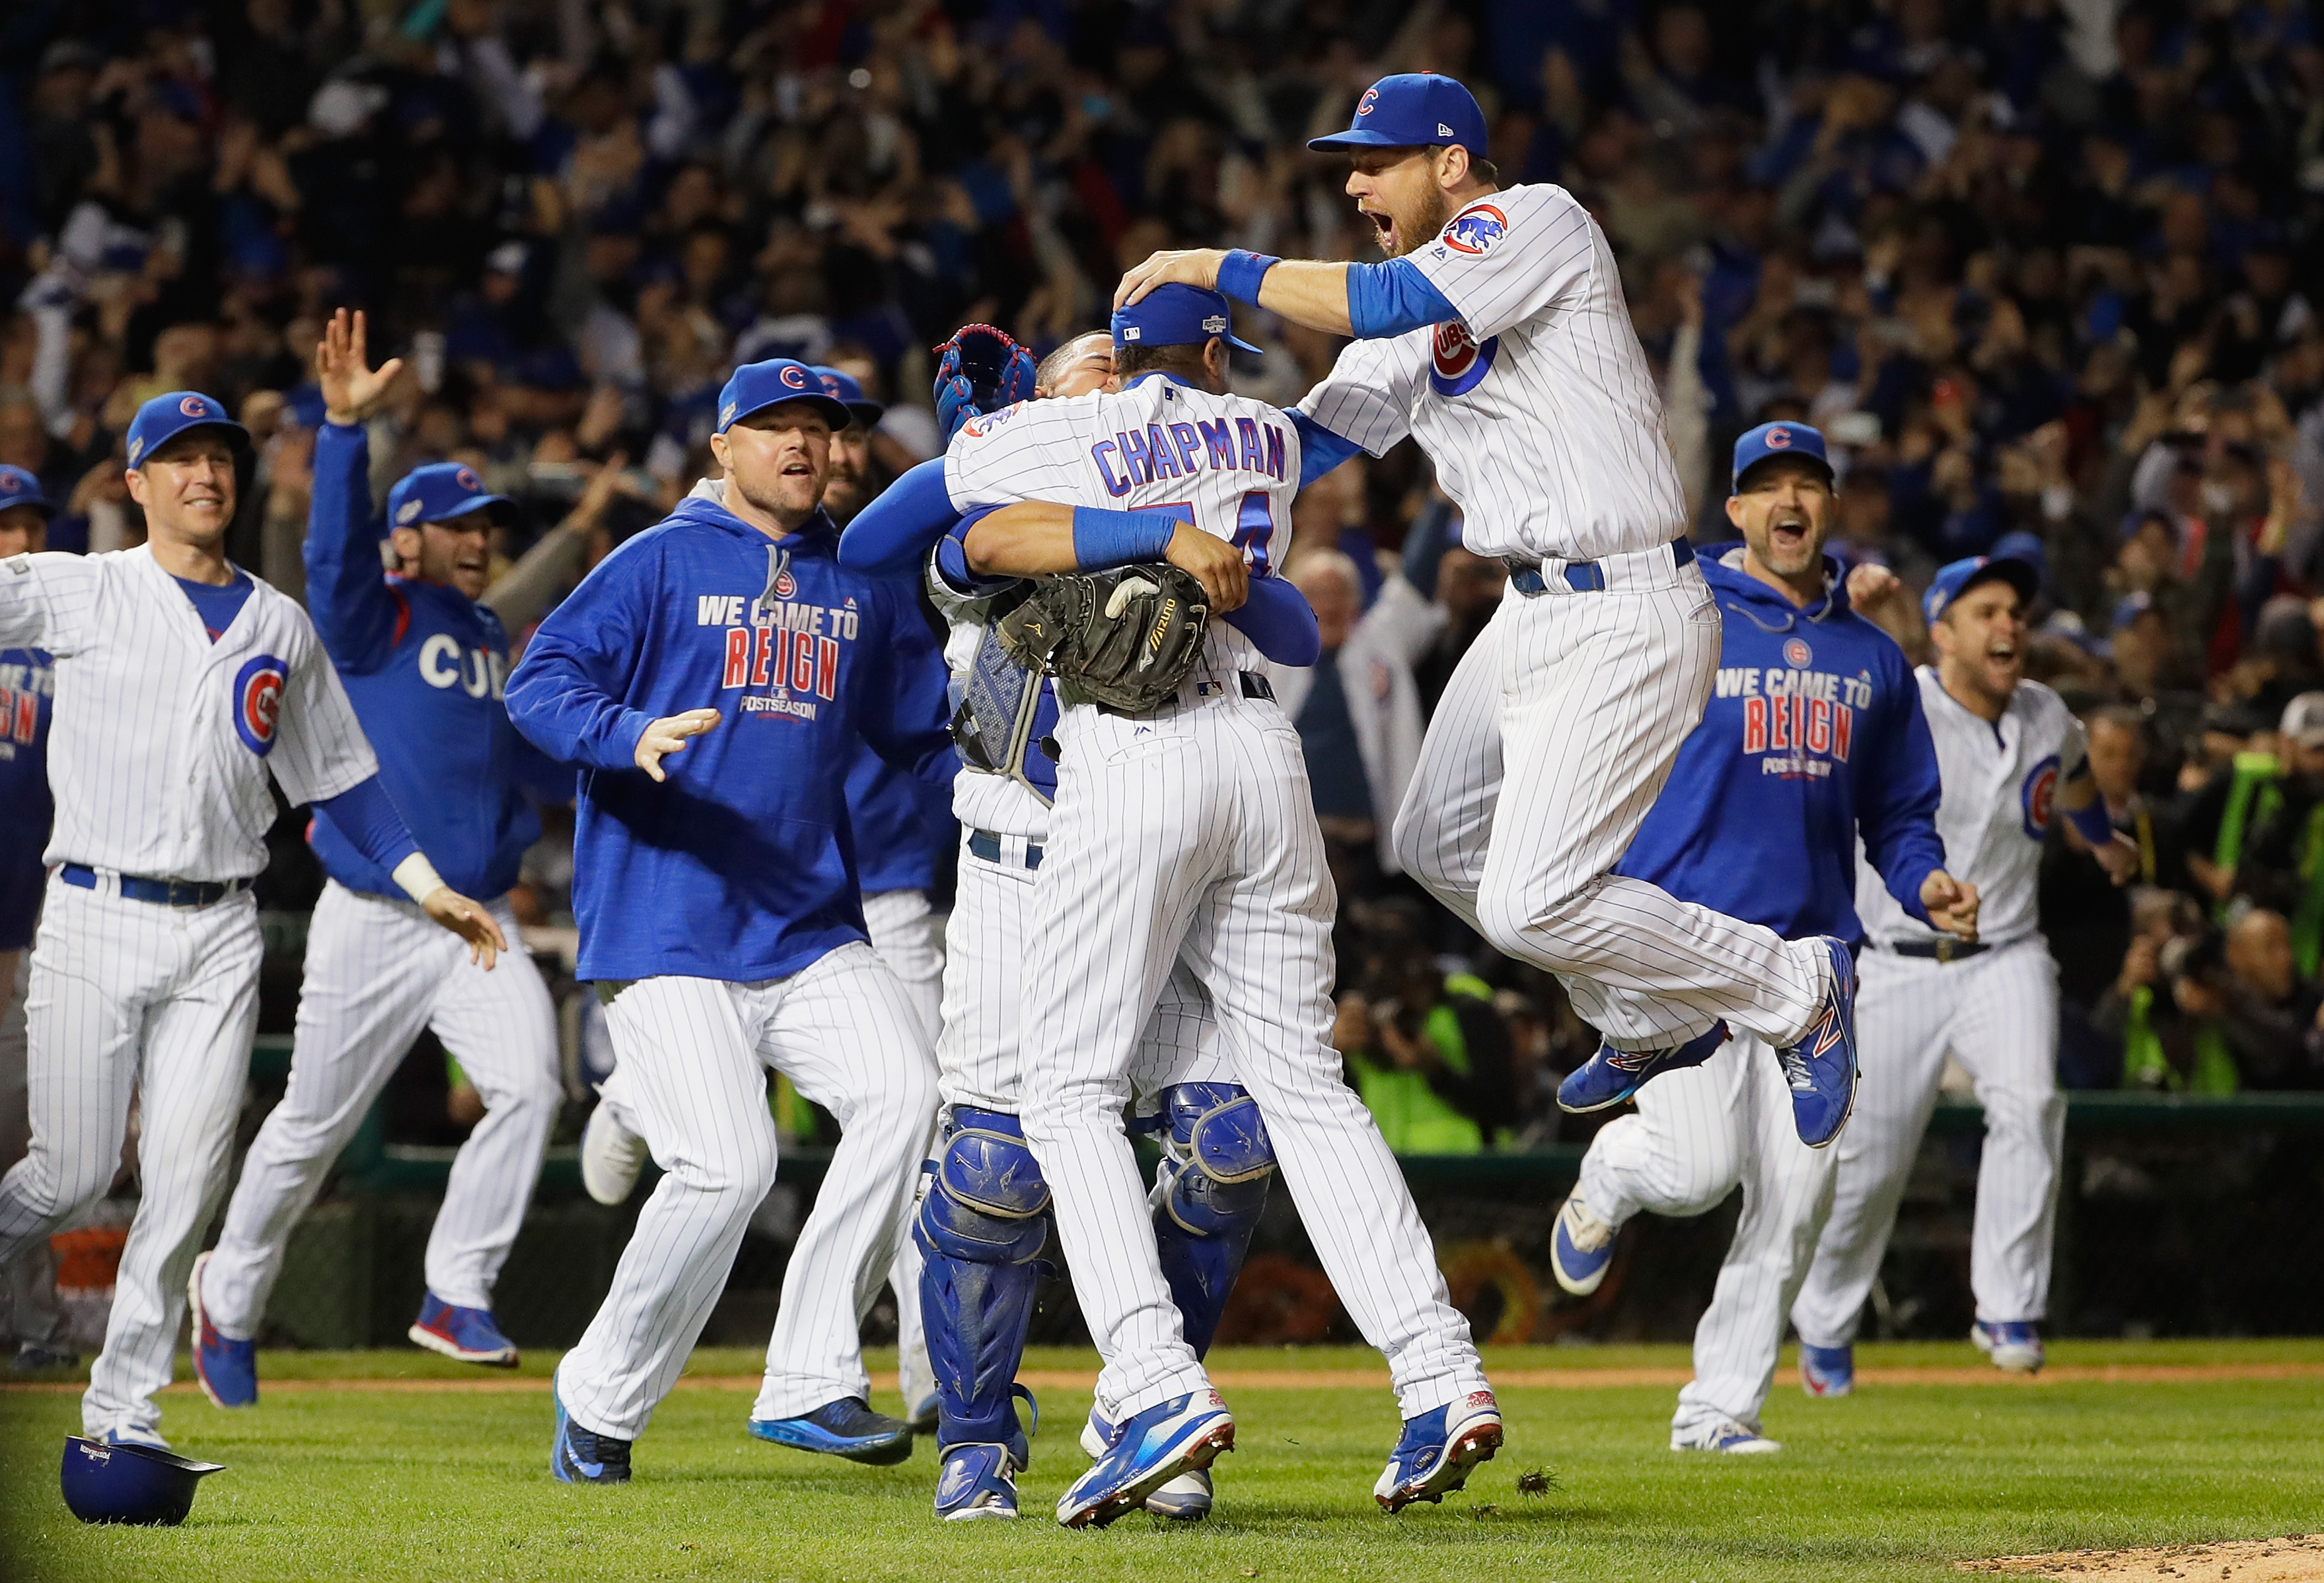 Believe it: Cubs are headed to the World Series after ousting Dodgers in NLCS Game 6